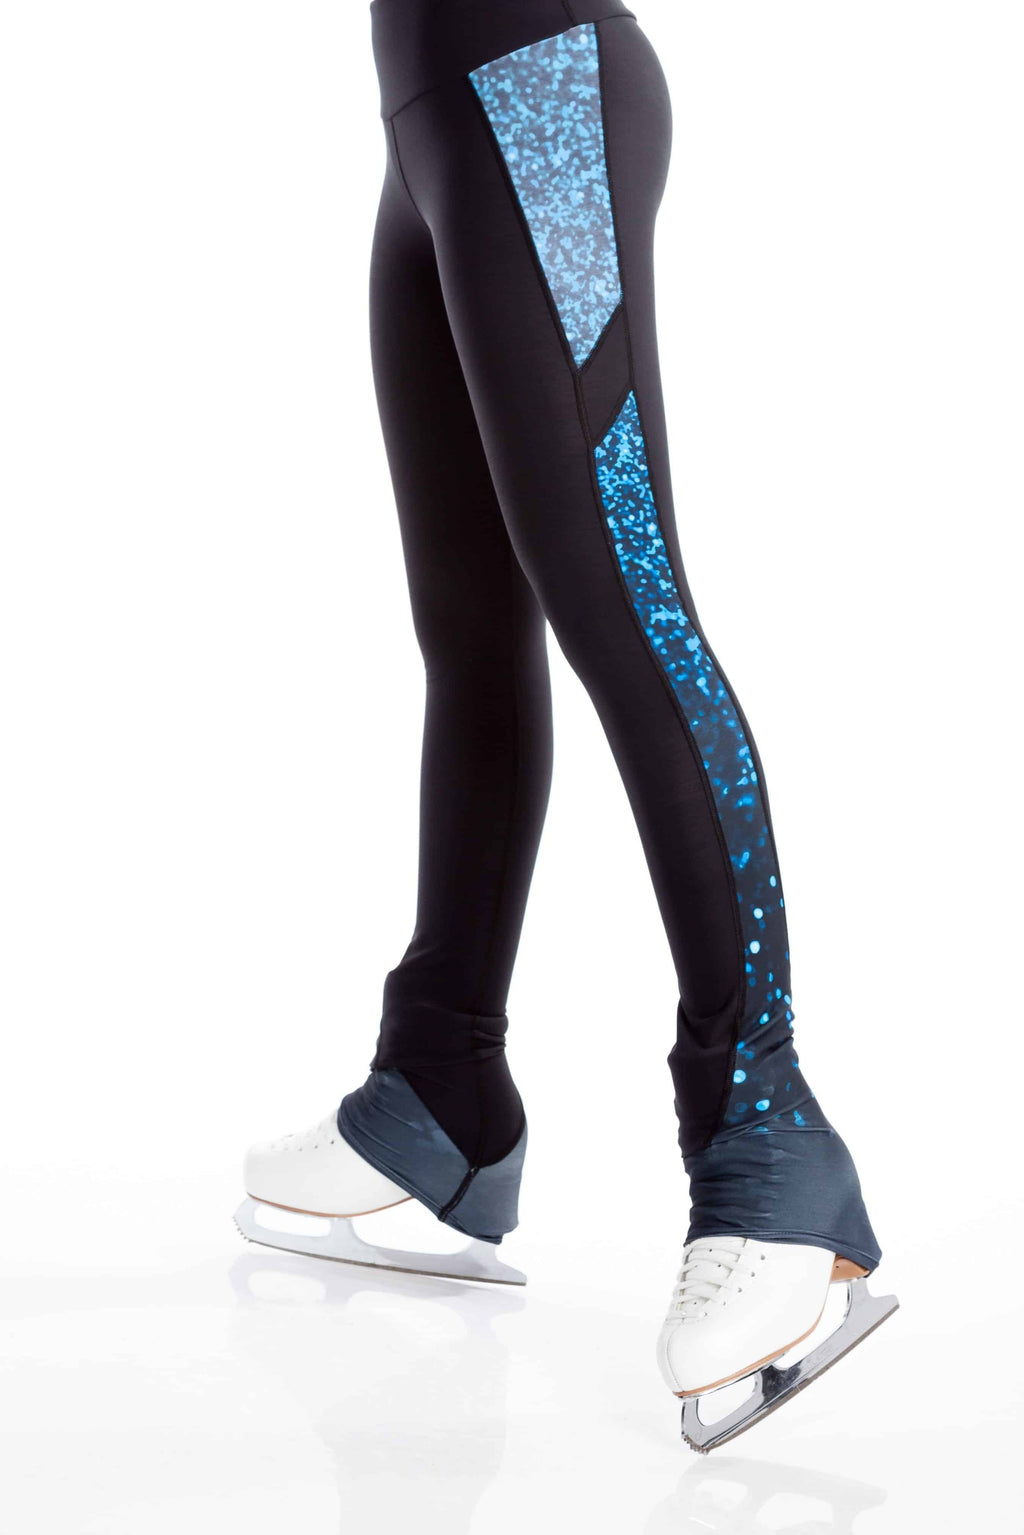 Legging with Insert - Sparkle Blue - Elite Xpression